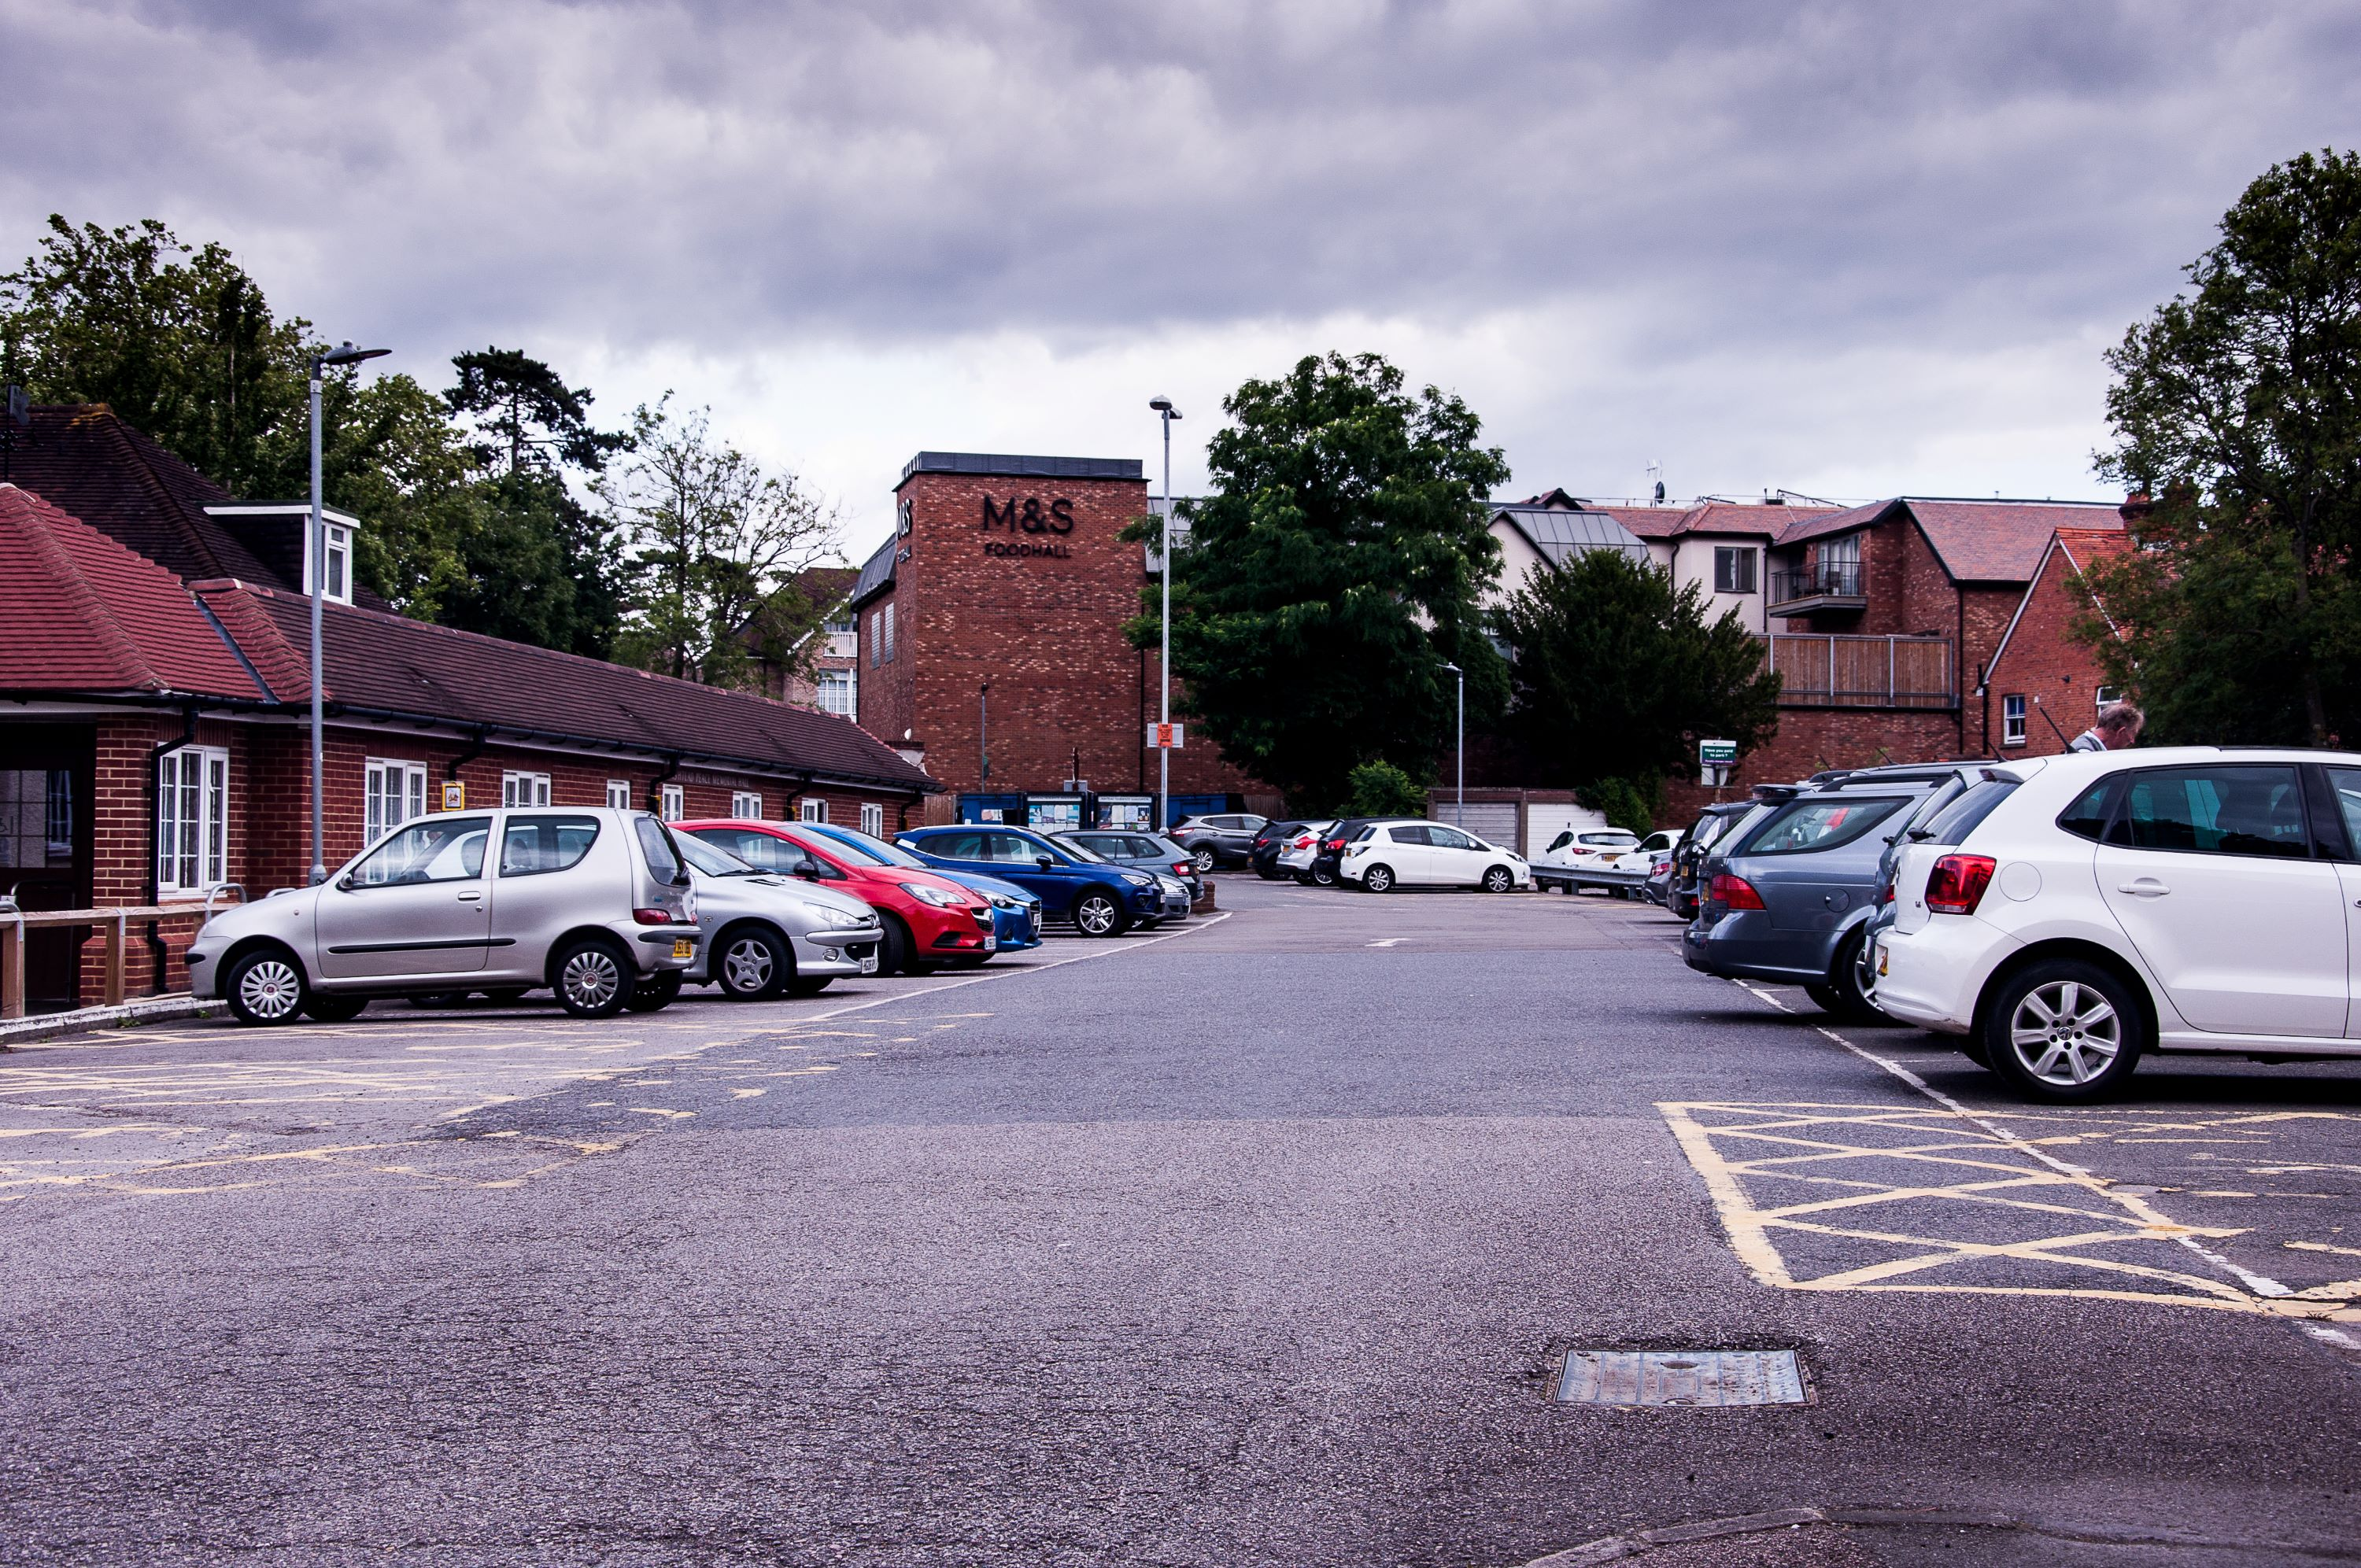 Ashtead Peace Memorial Hall Car Park